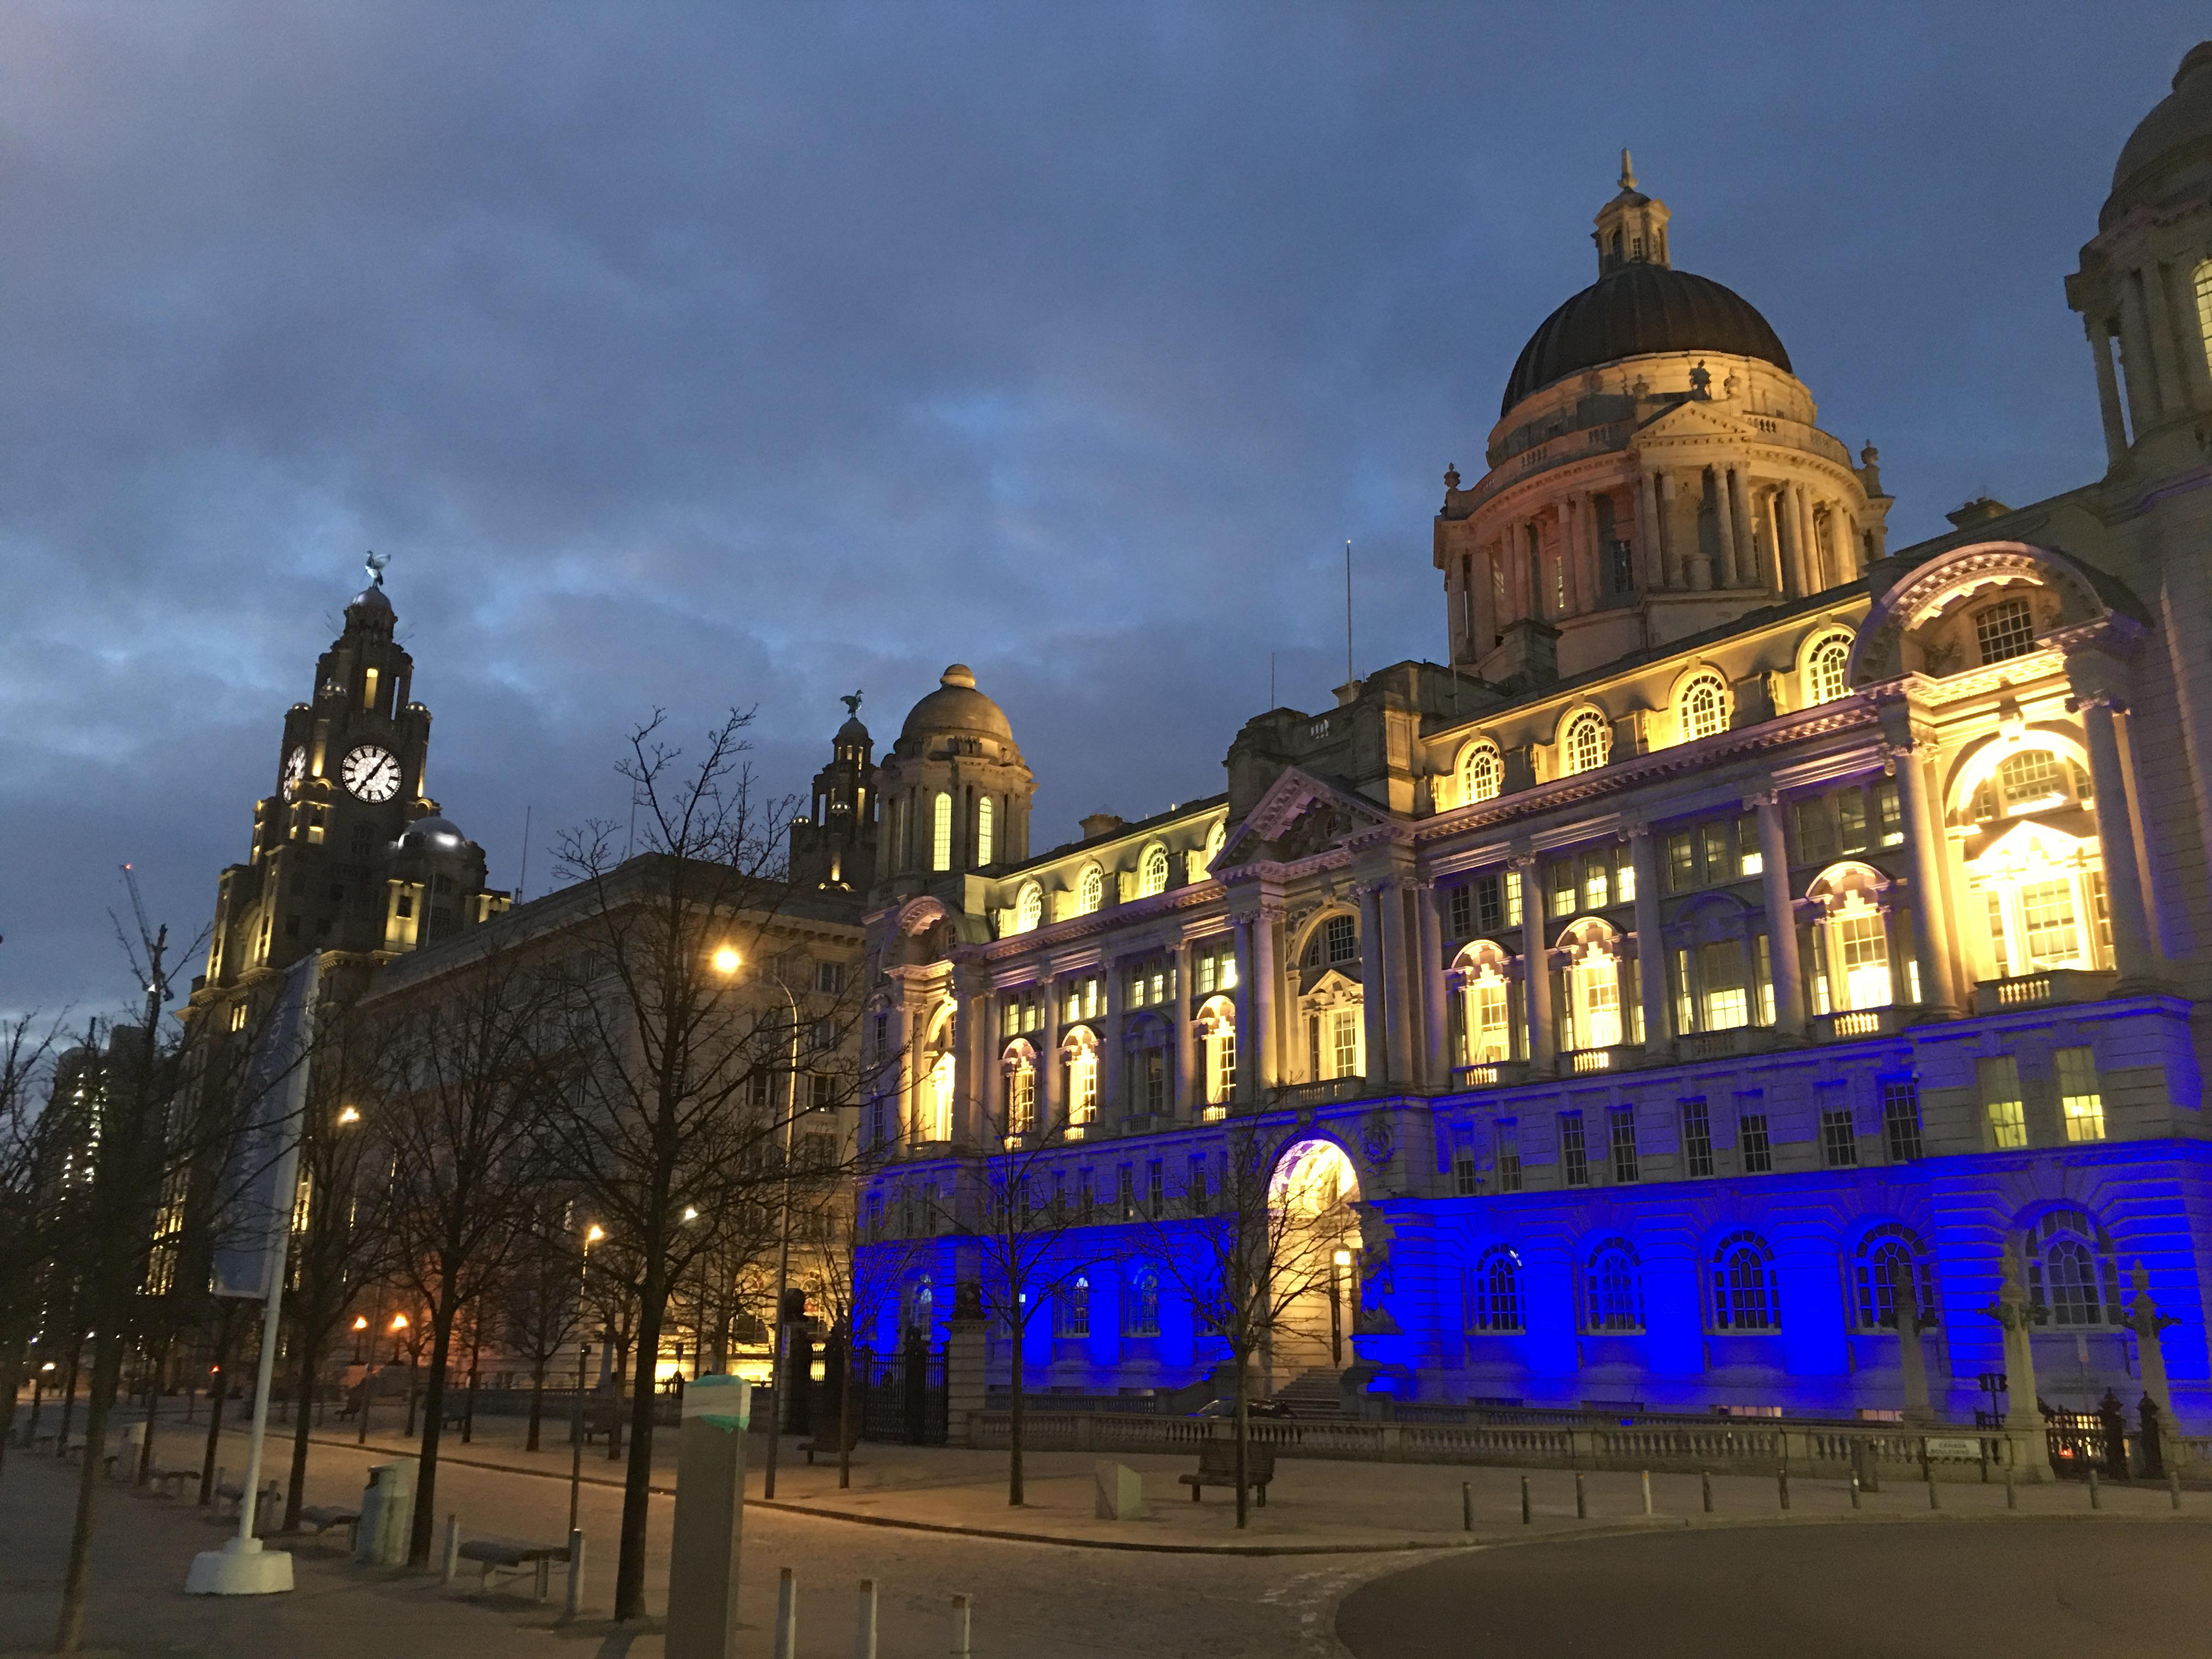 V-TAC floodlights replace old fixtures at Port of Liverpool building